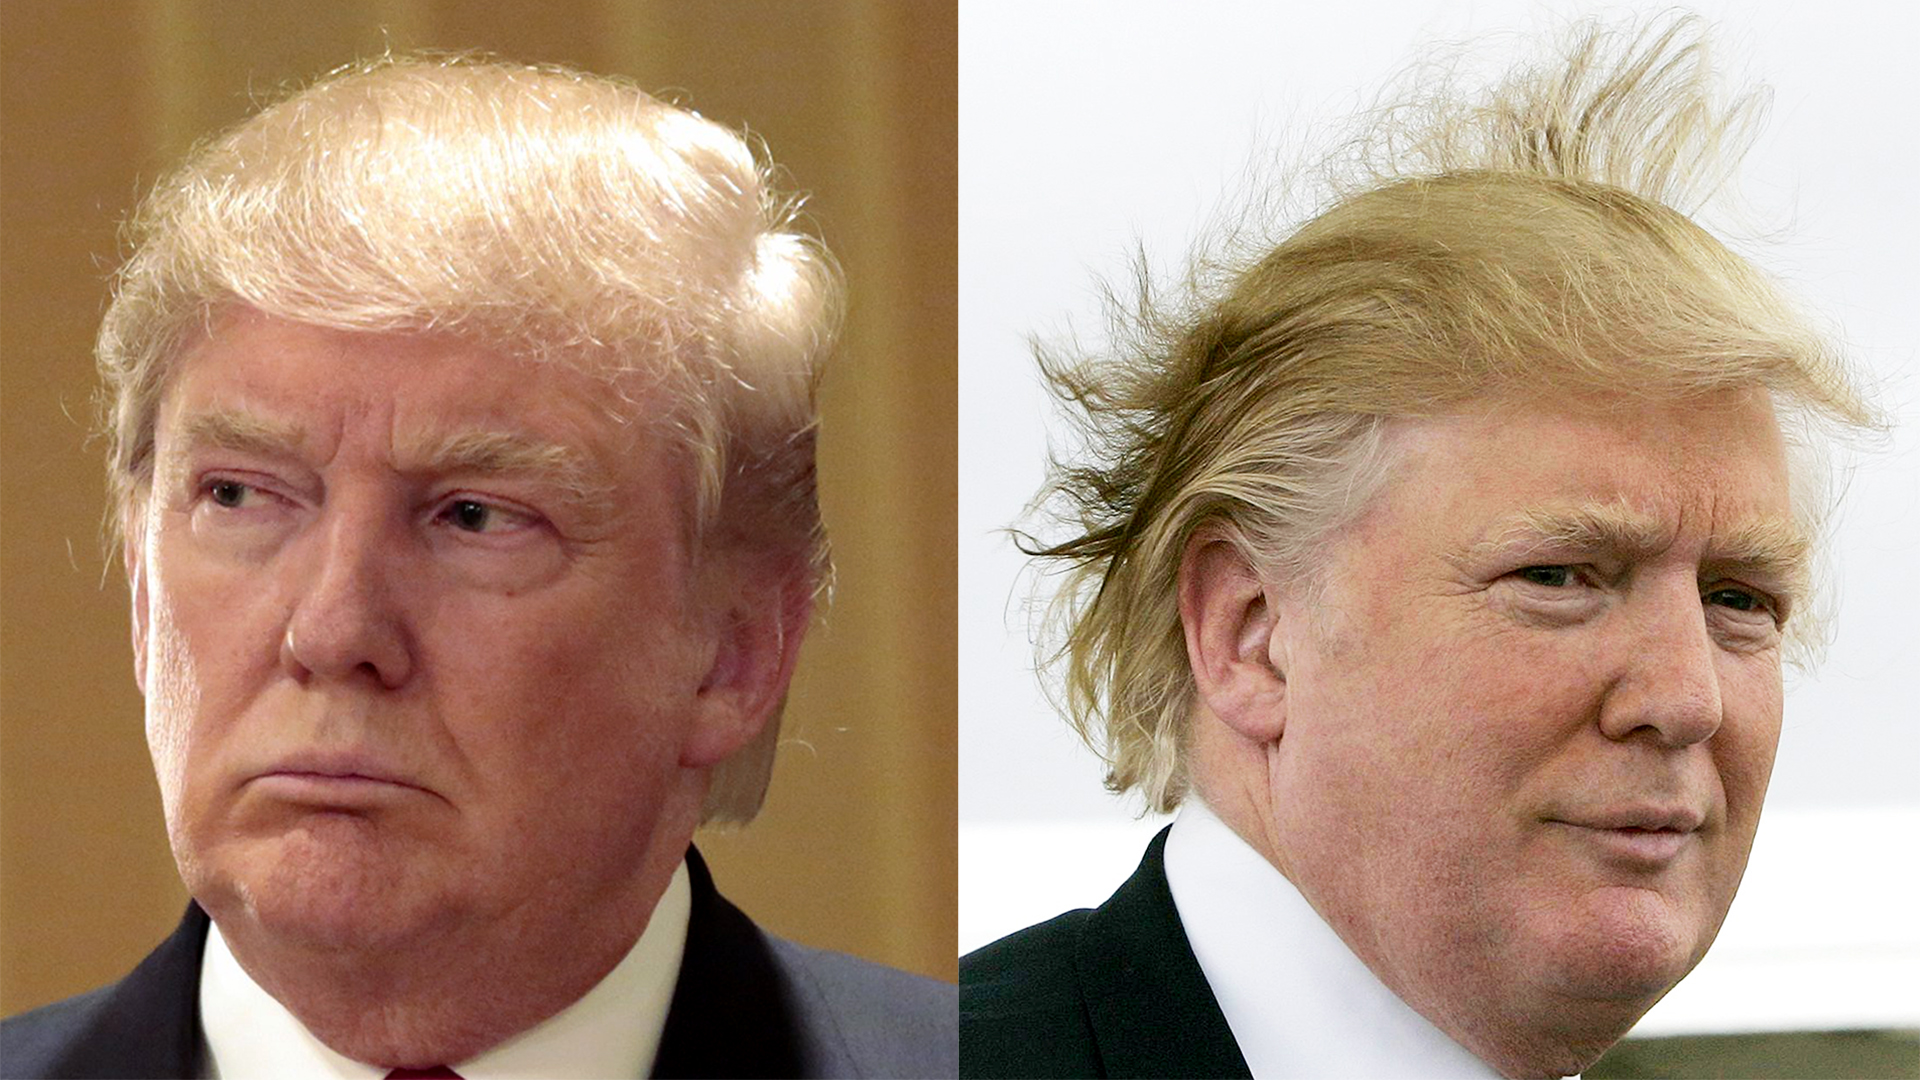 Donald Trumps Hair Defended And Explained In His Own